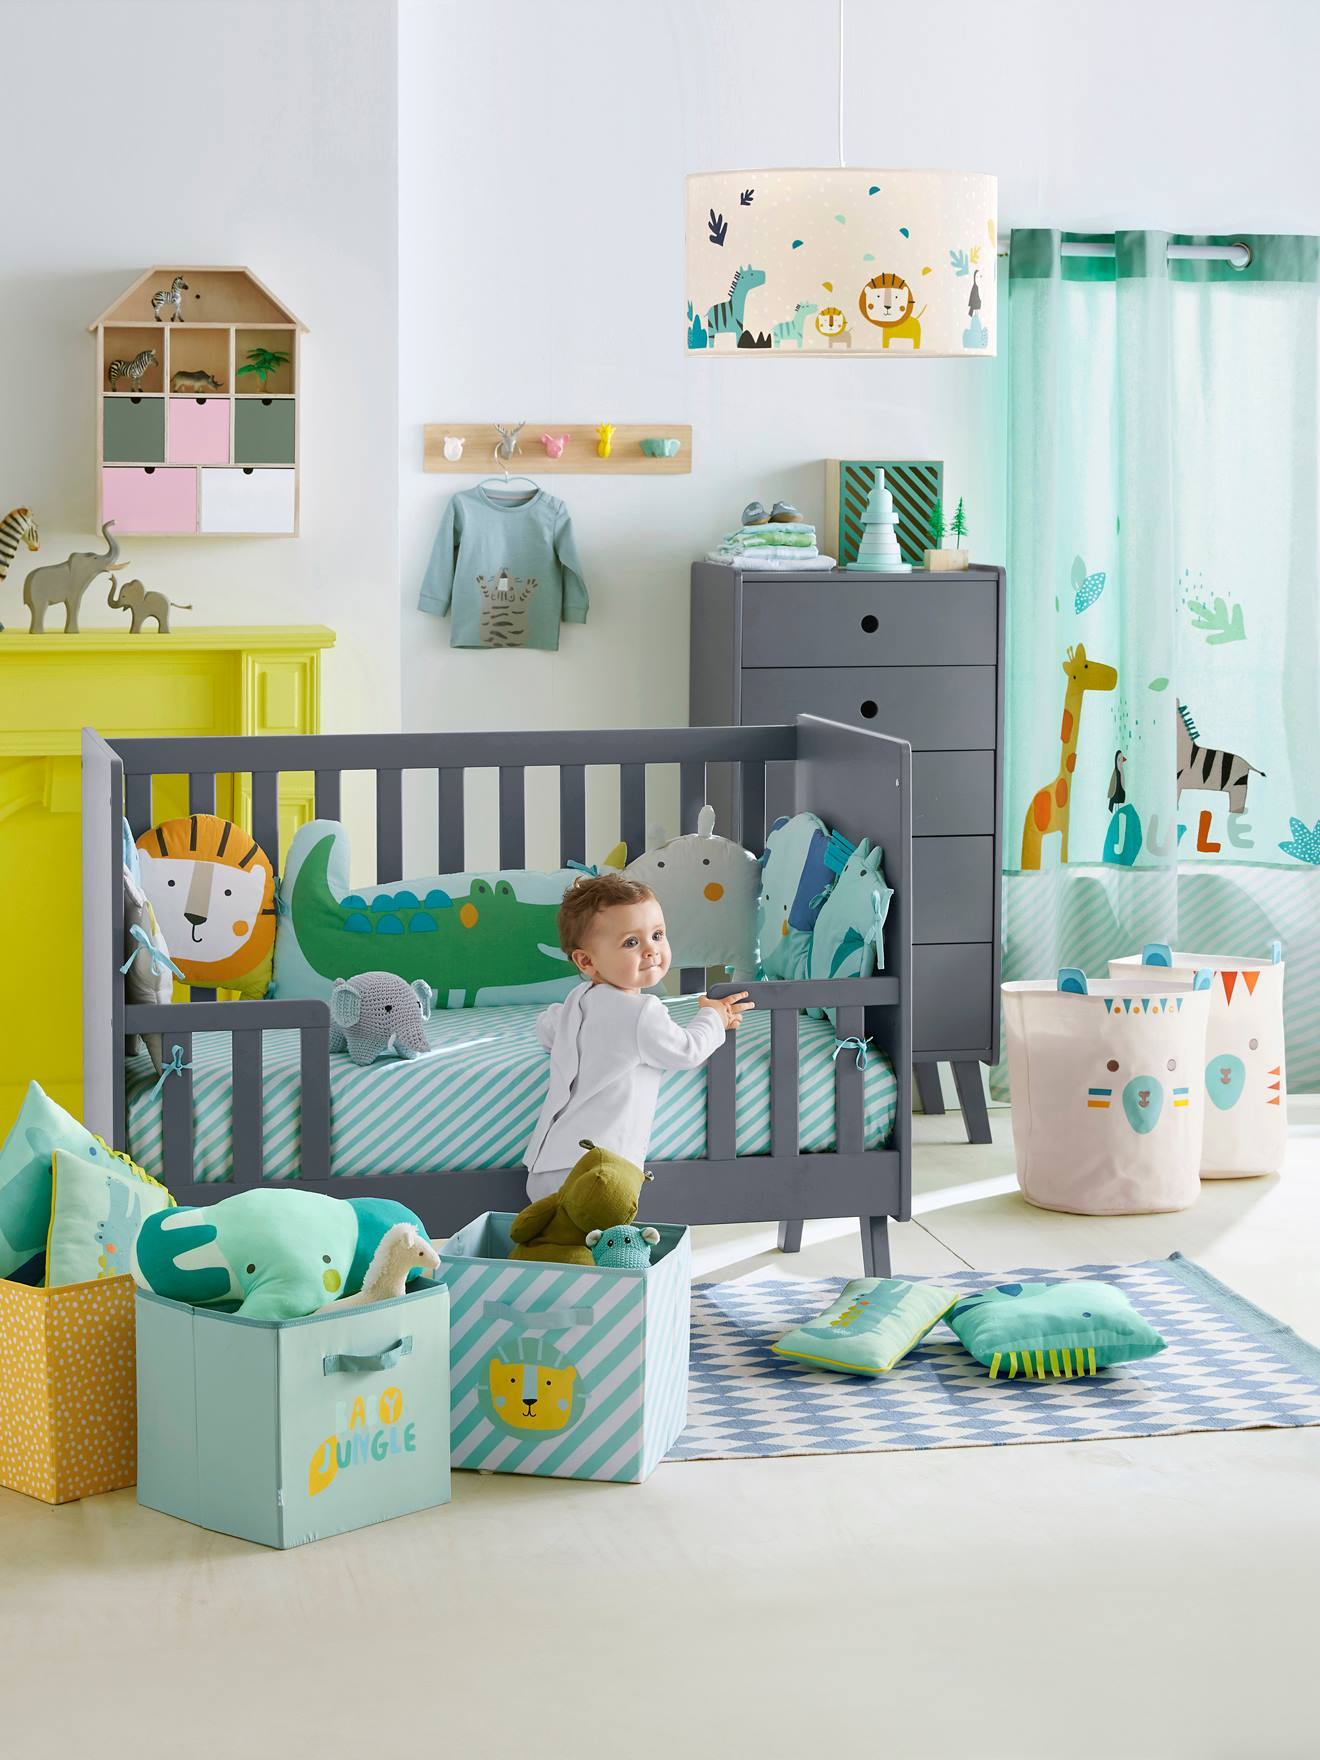 Chambre Bebe Jungle : Deco jungle vertbaudet